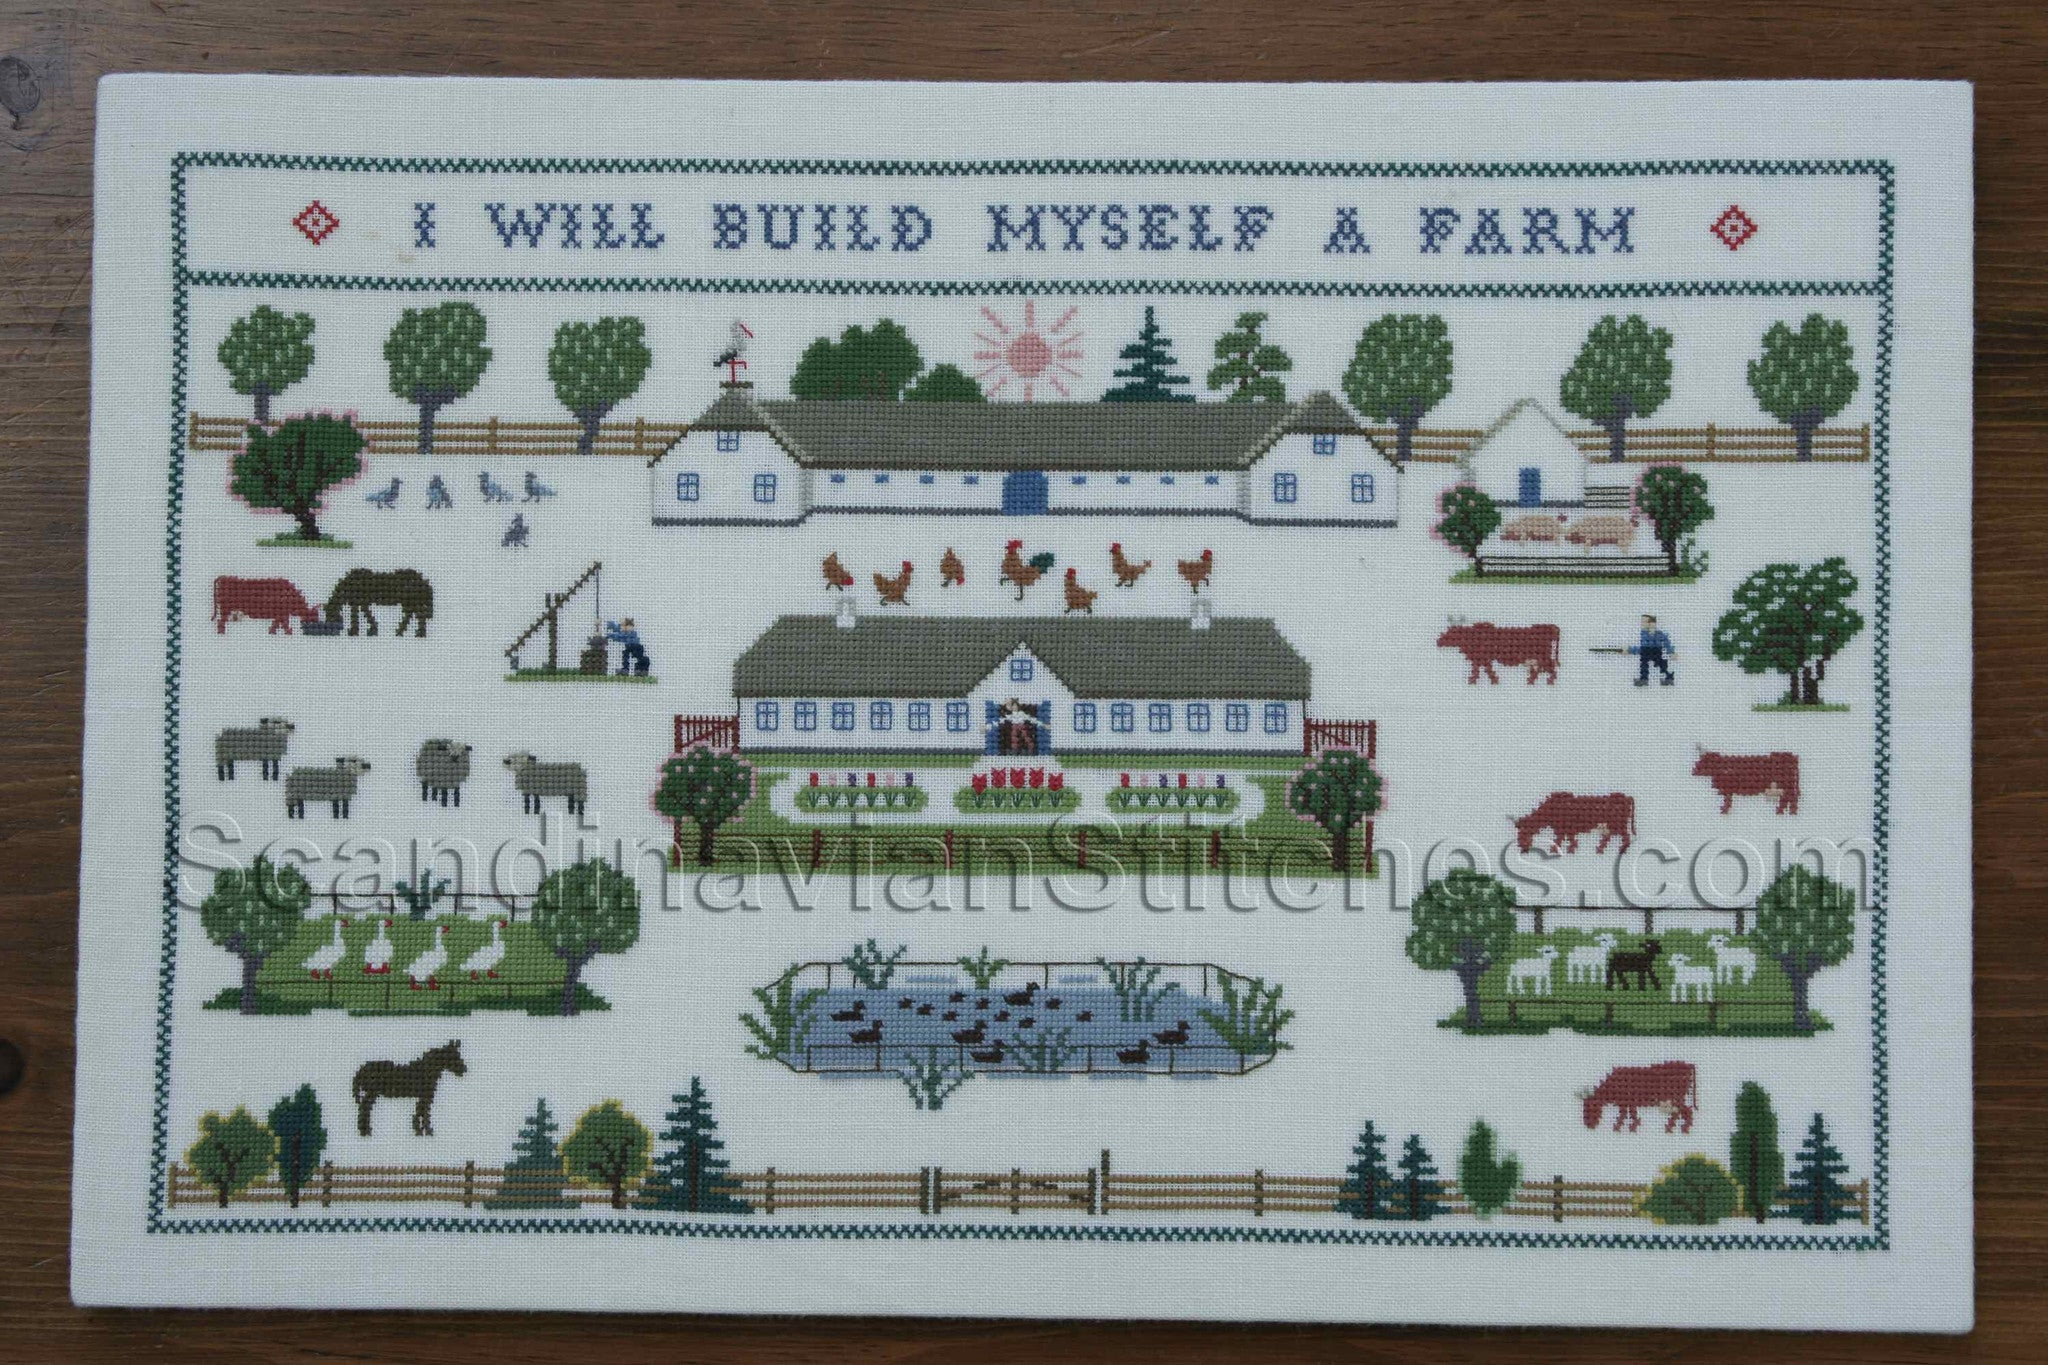 I Will Build Myself a Farm